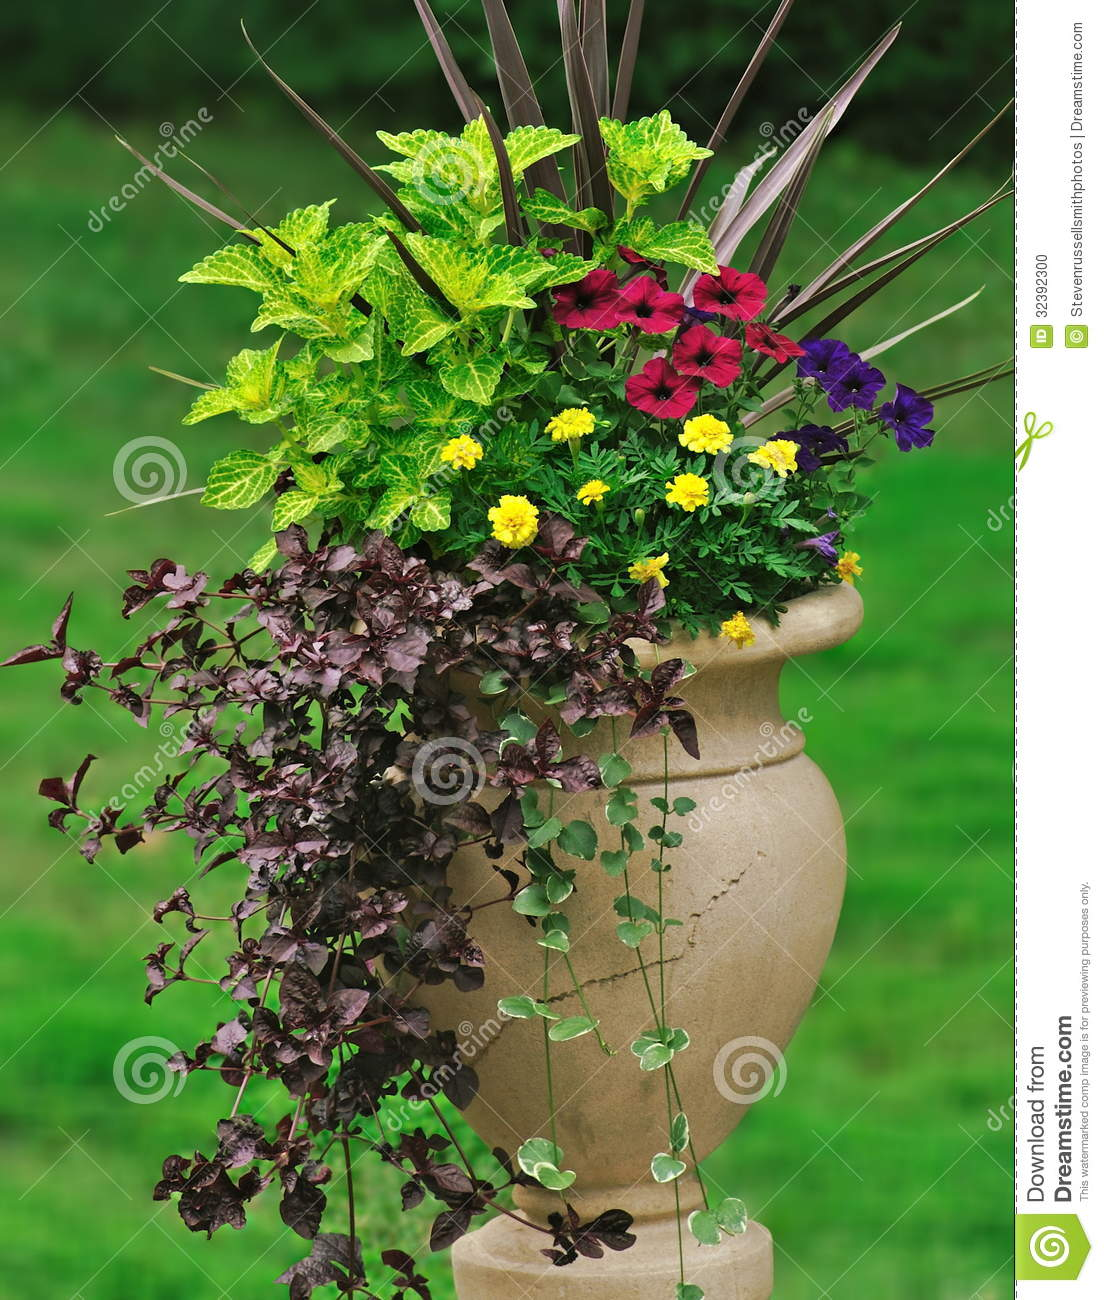 Container Gardening Stock Photo - Image: 32392300